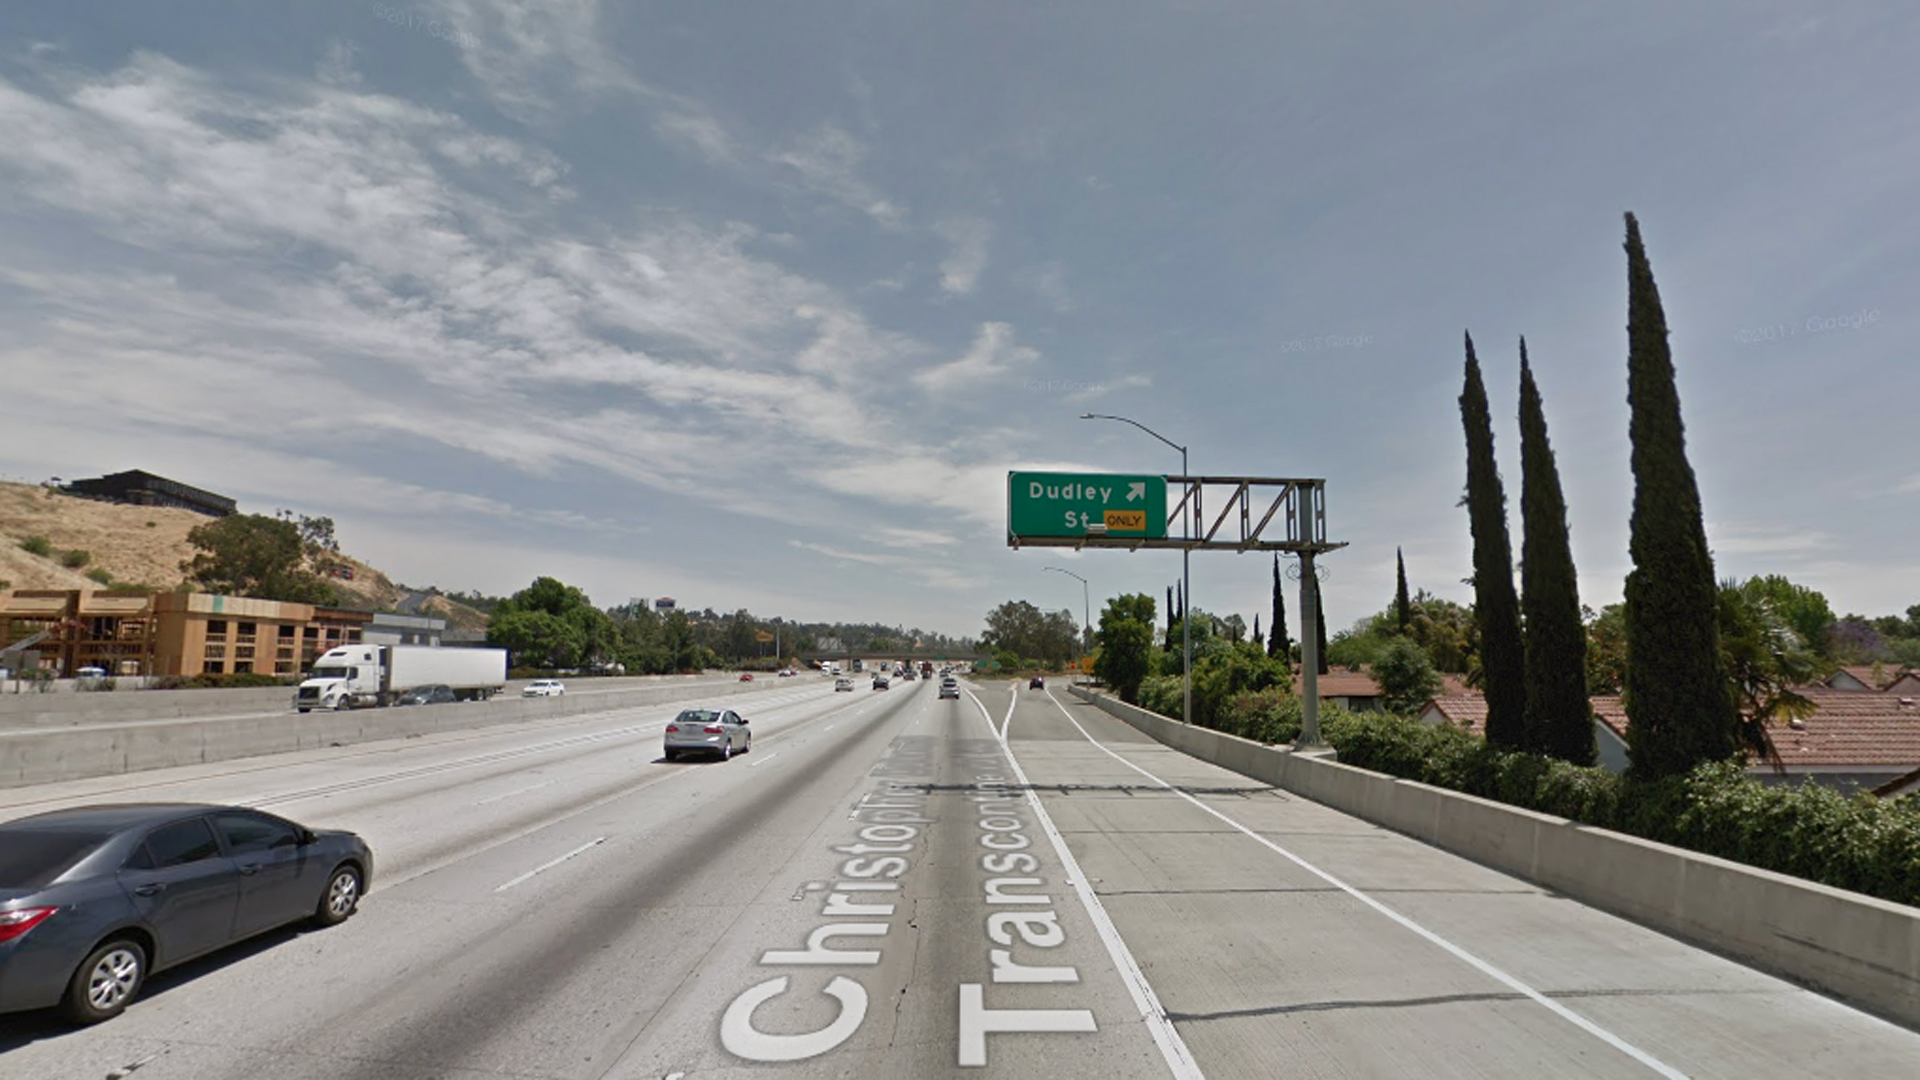 The eastbound 10 Freeway approaching Dudley Street in Pomona, as pictured in a Google Street View image in April of 2017.